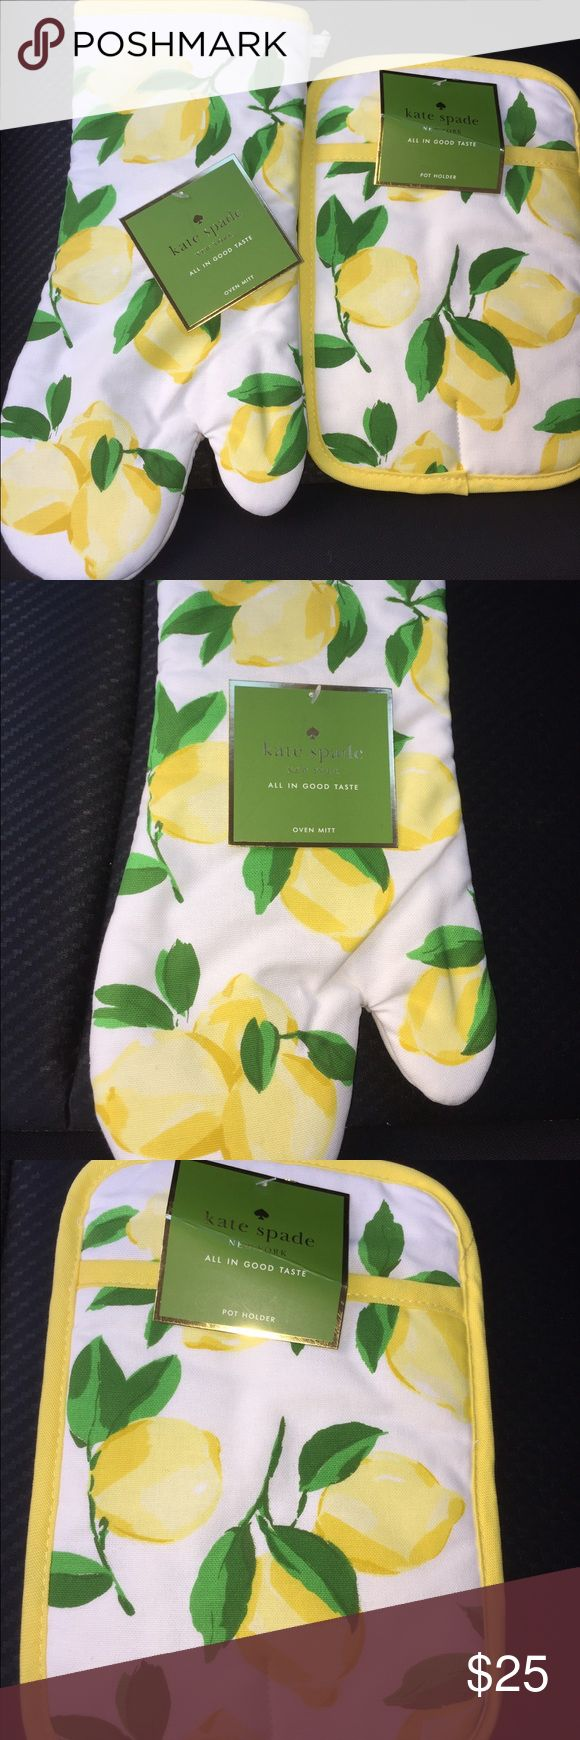 NWT Kate Spade Oven Mit and Pot Holder Beautiful lemon kitchen oven mitt and pot holder. Would make a fantastic gift! kate spade Other